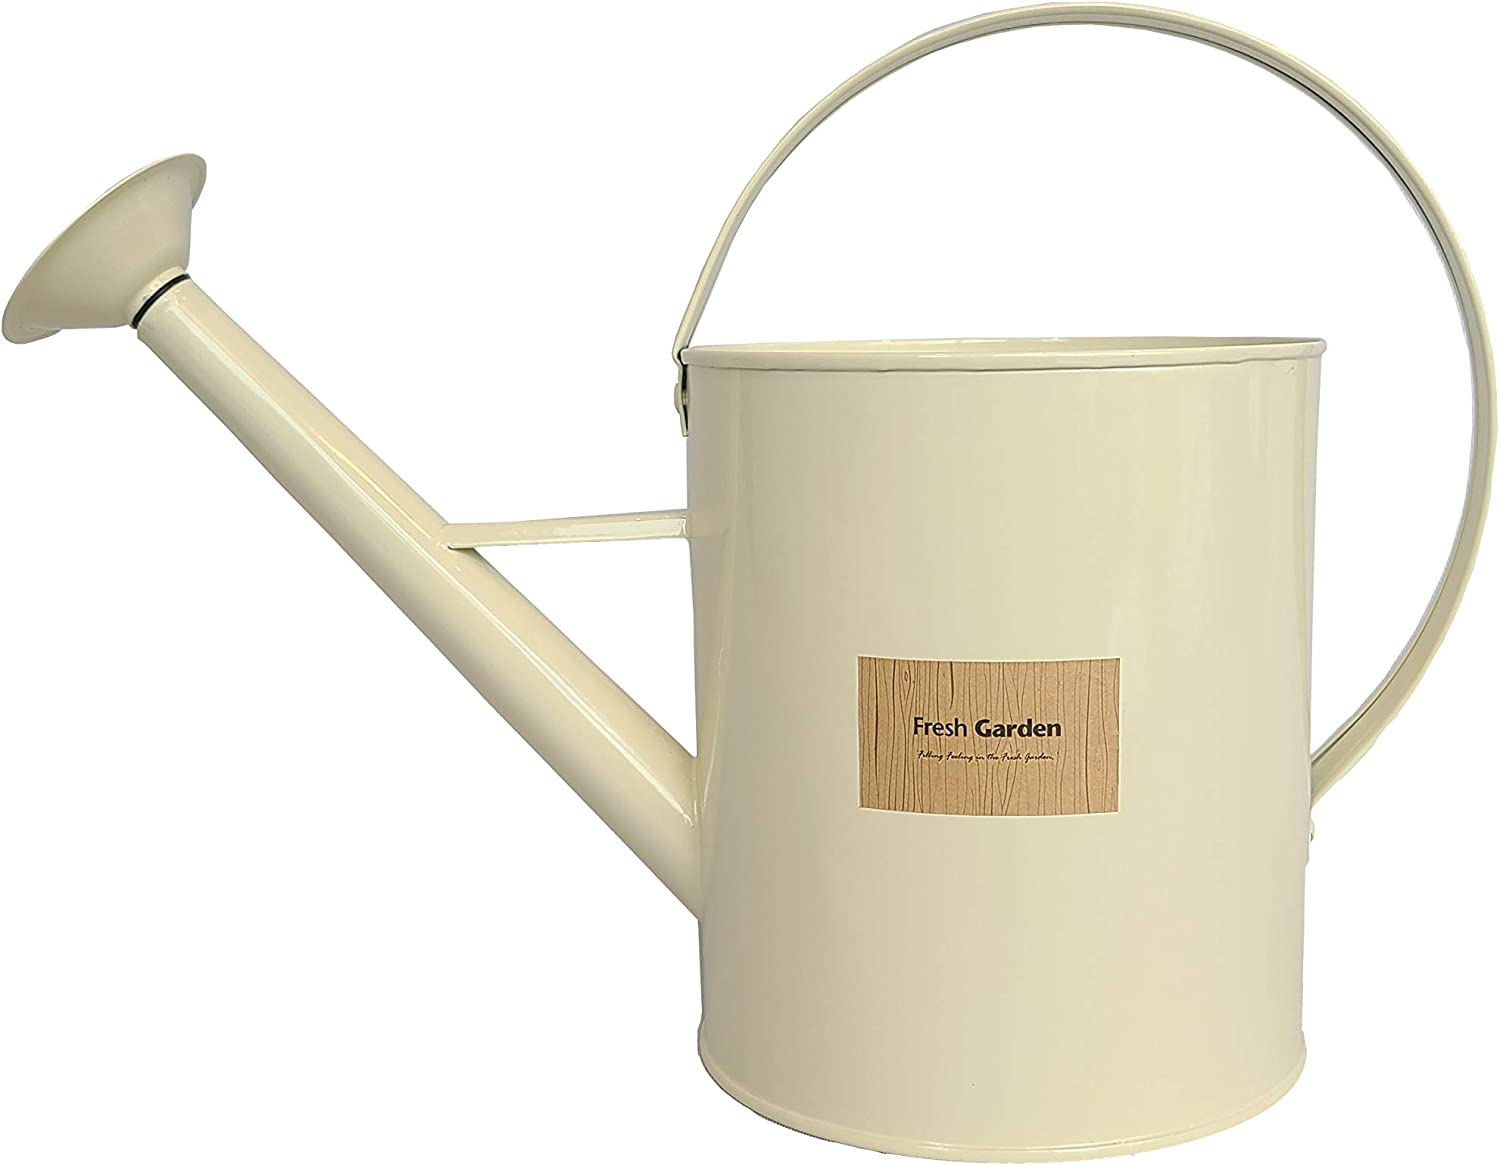 BFA Metal Watering Can Inexpensive with Removable Shower ga Beauty products 3.5L Head 0.92